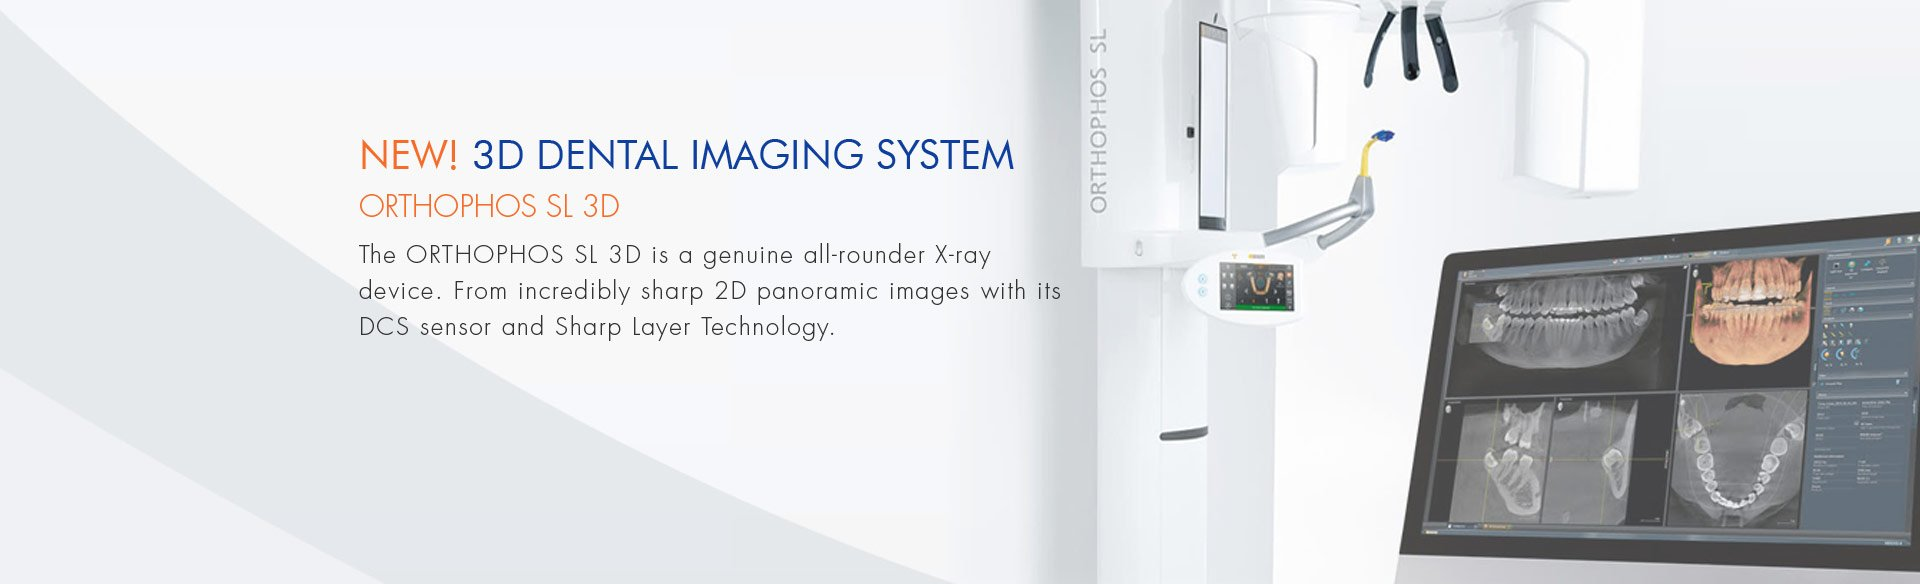 Dr. Carlos Garcia near Glendale CA, Image Of 3D Dental Imaging System